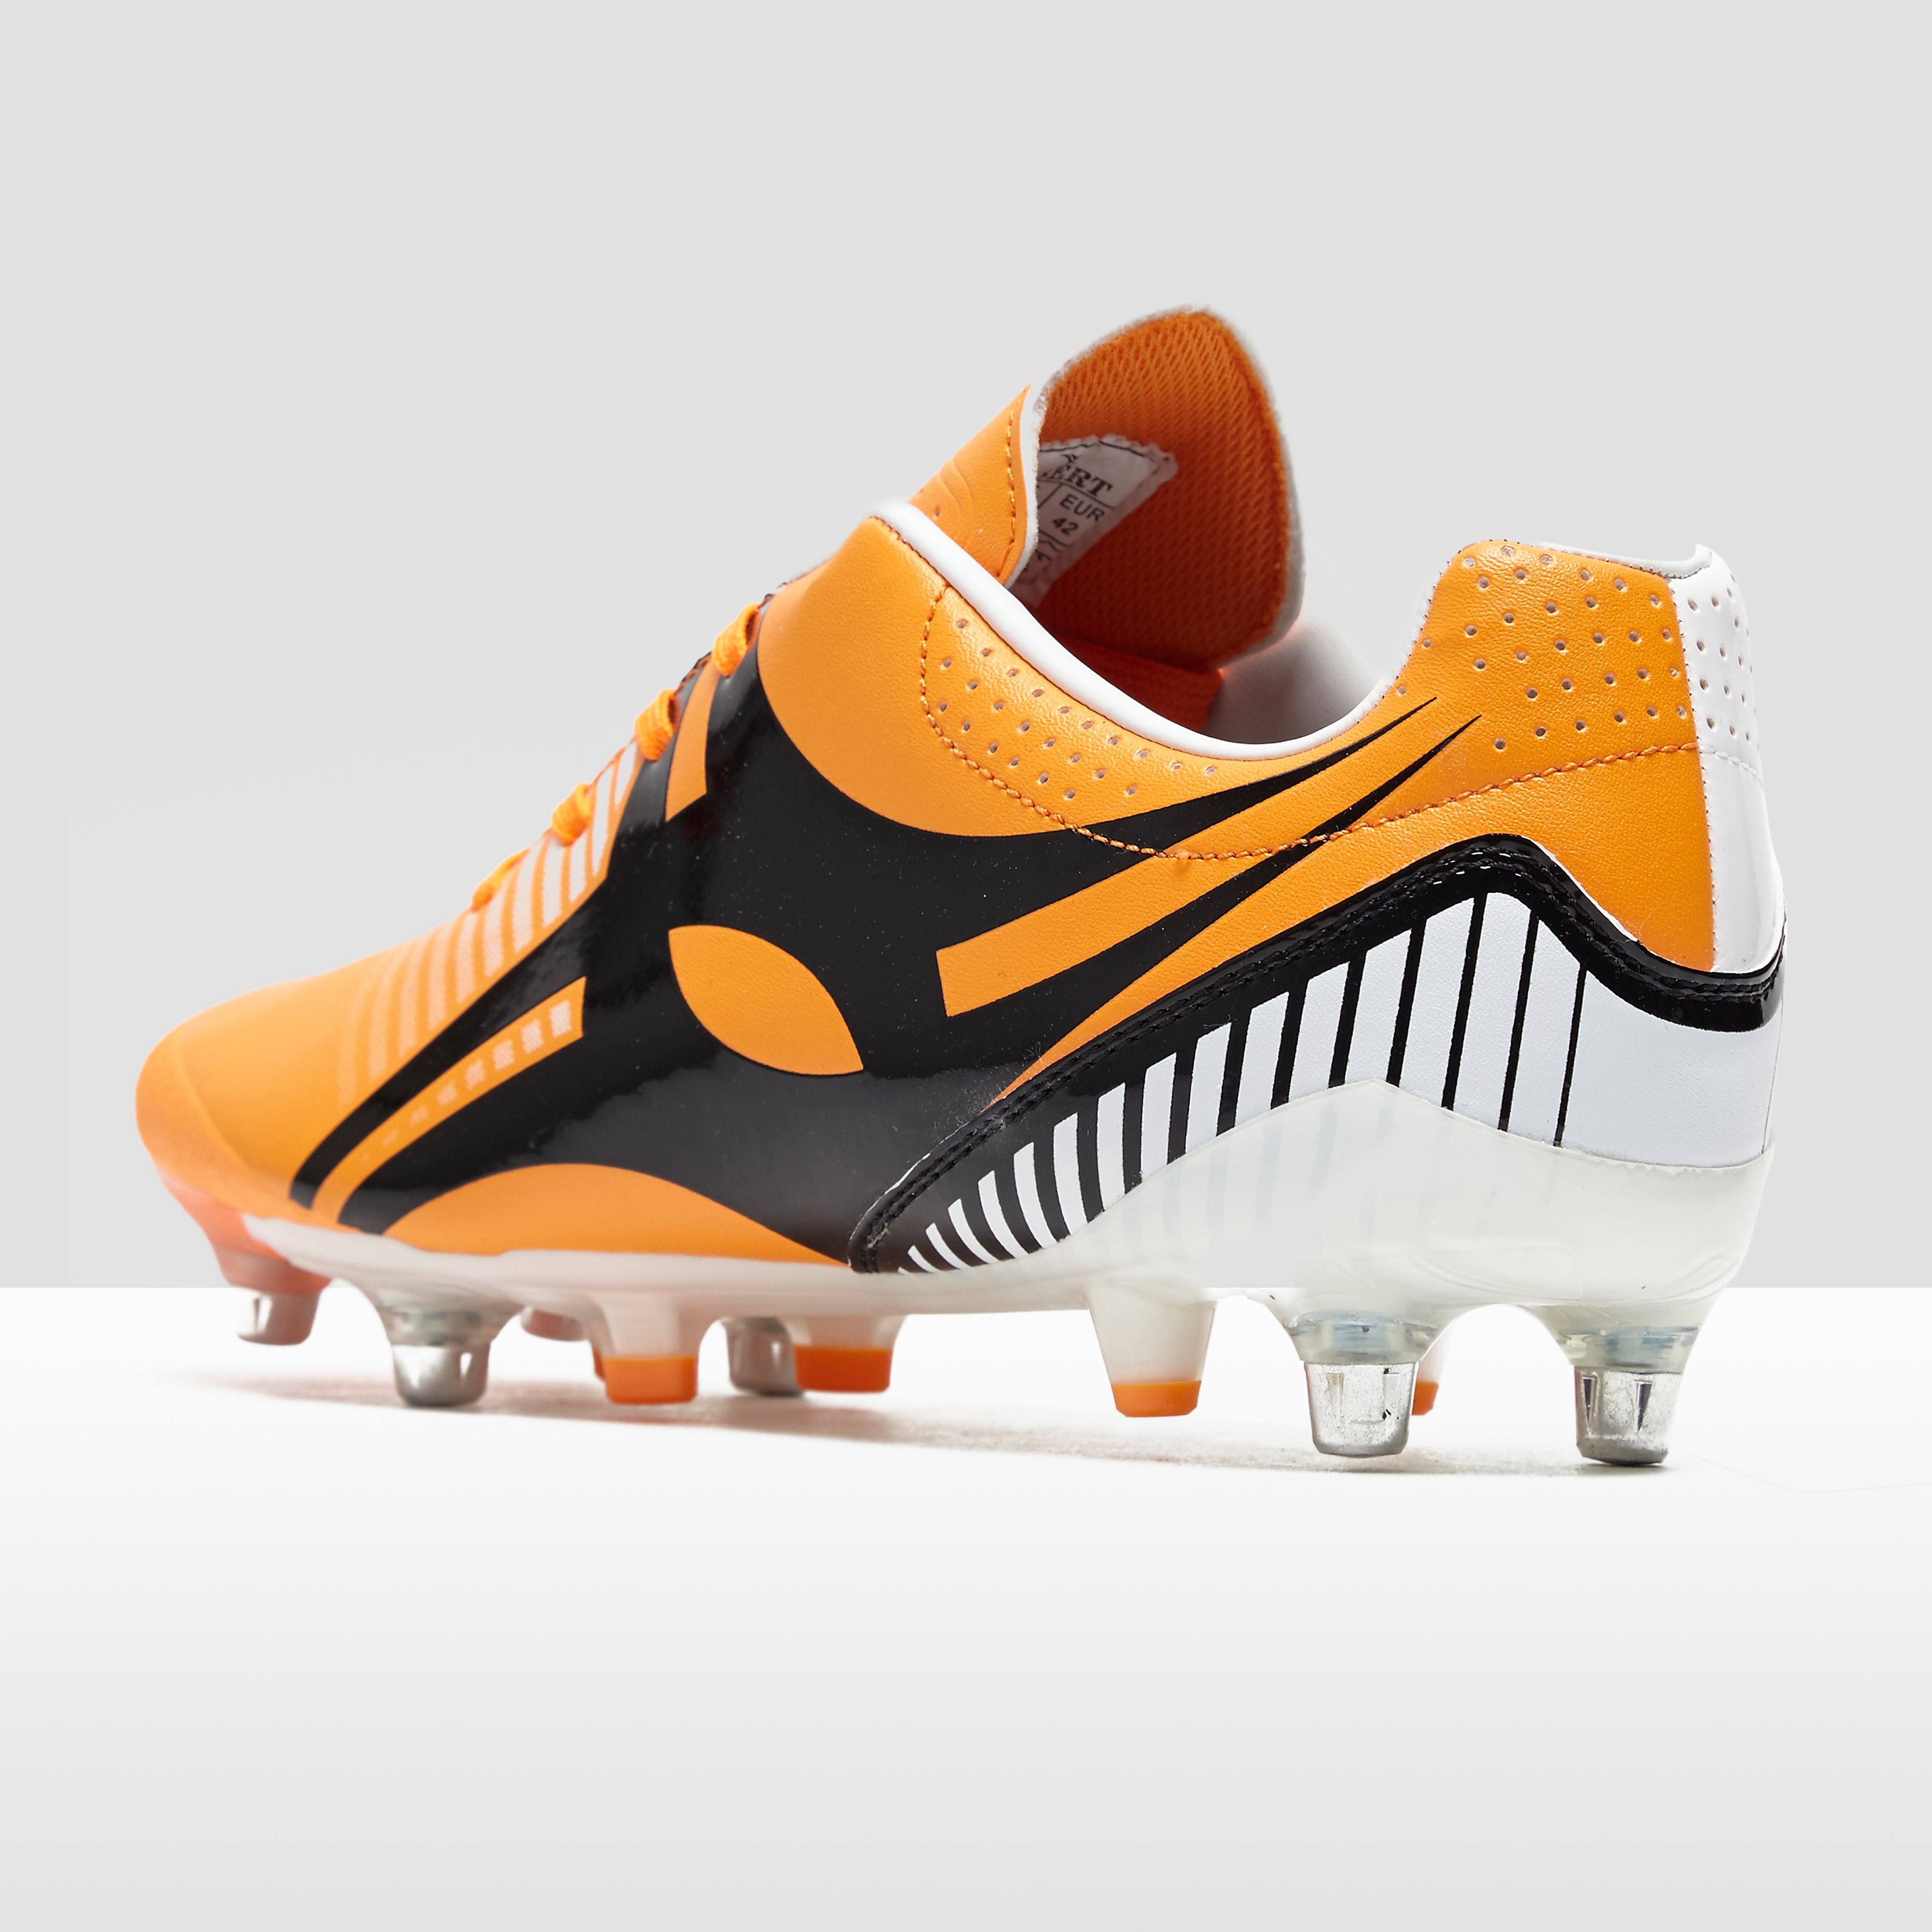 Gilbert Men's Ignite Fly 6 Stud Hybrid SG Rugby Boots